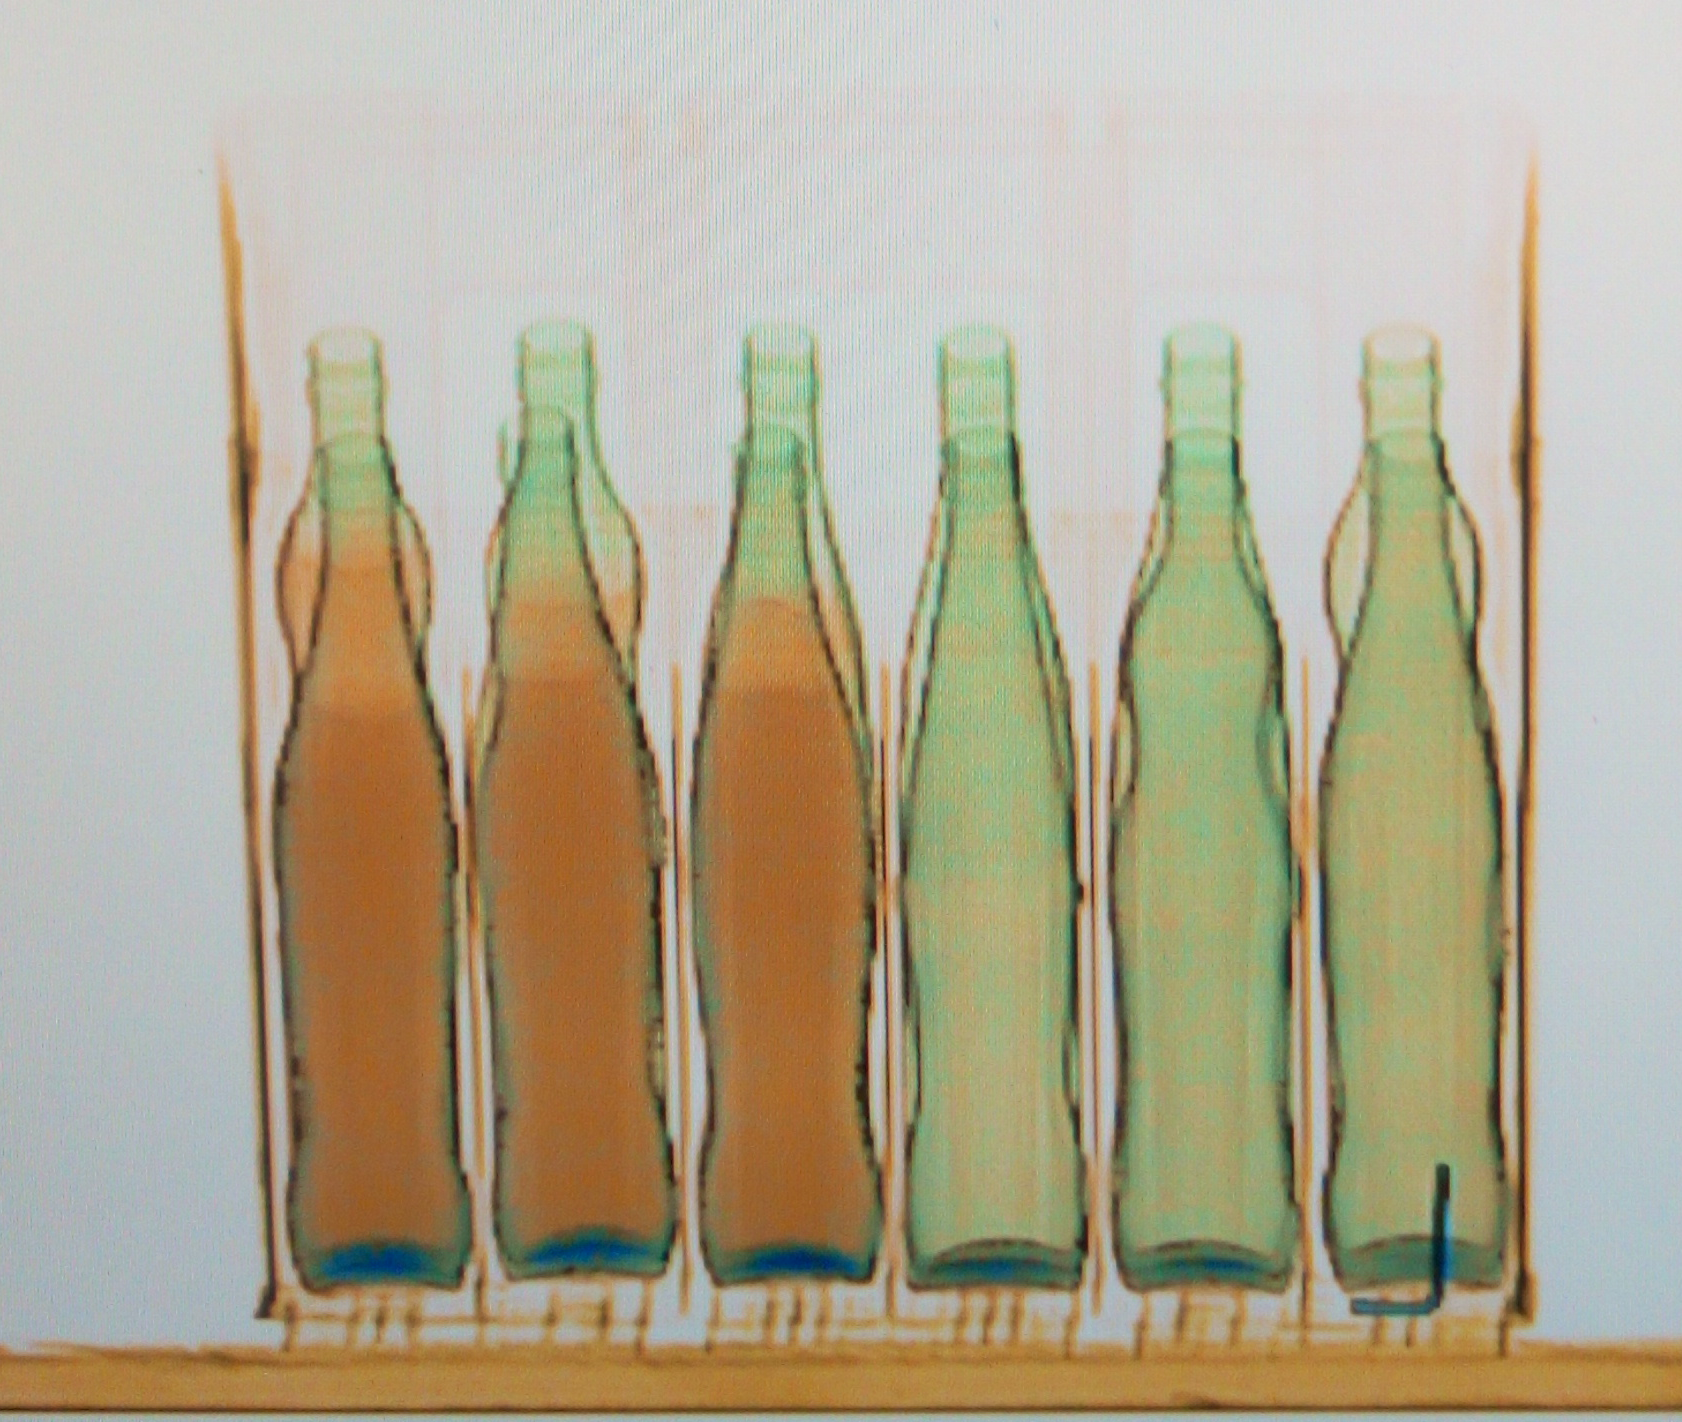 bottles in the x-ray simulator